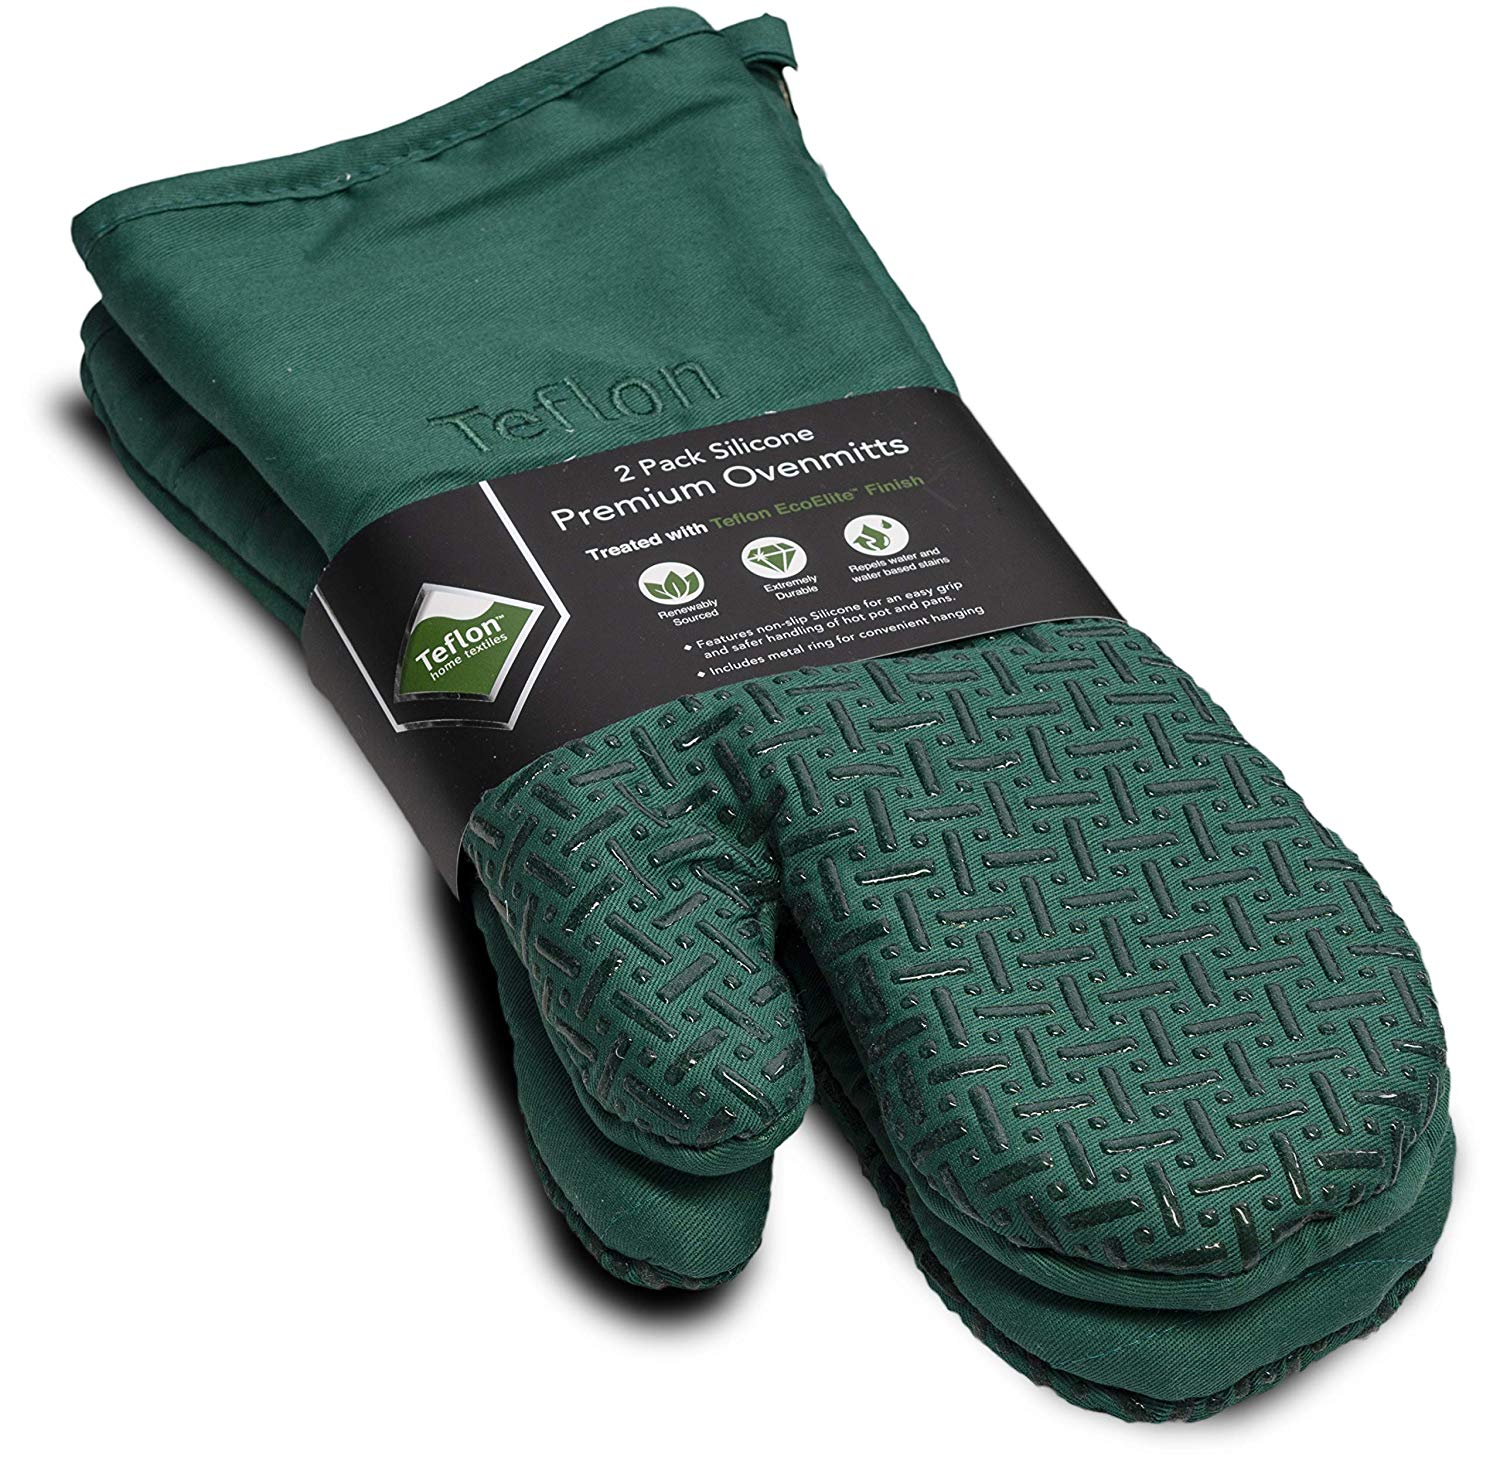 XLNT Extra Long Green Oven Mitts, Waterproof and Heat Resistant, Teflon Eco Elite Coating with Cotton Lining, Silicone Non Slip Texture, Hanging Loop, Great for Home Baker Or Commercial Chef Use